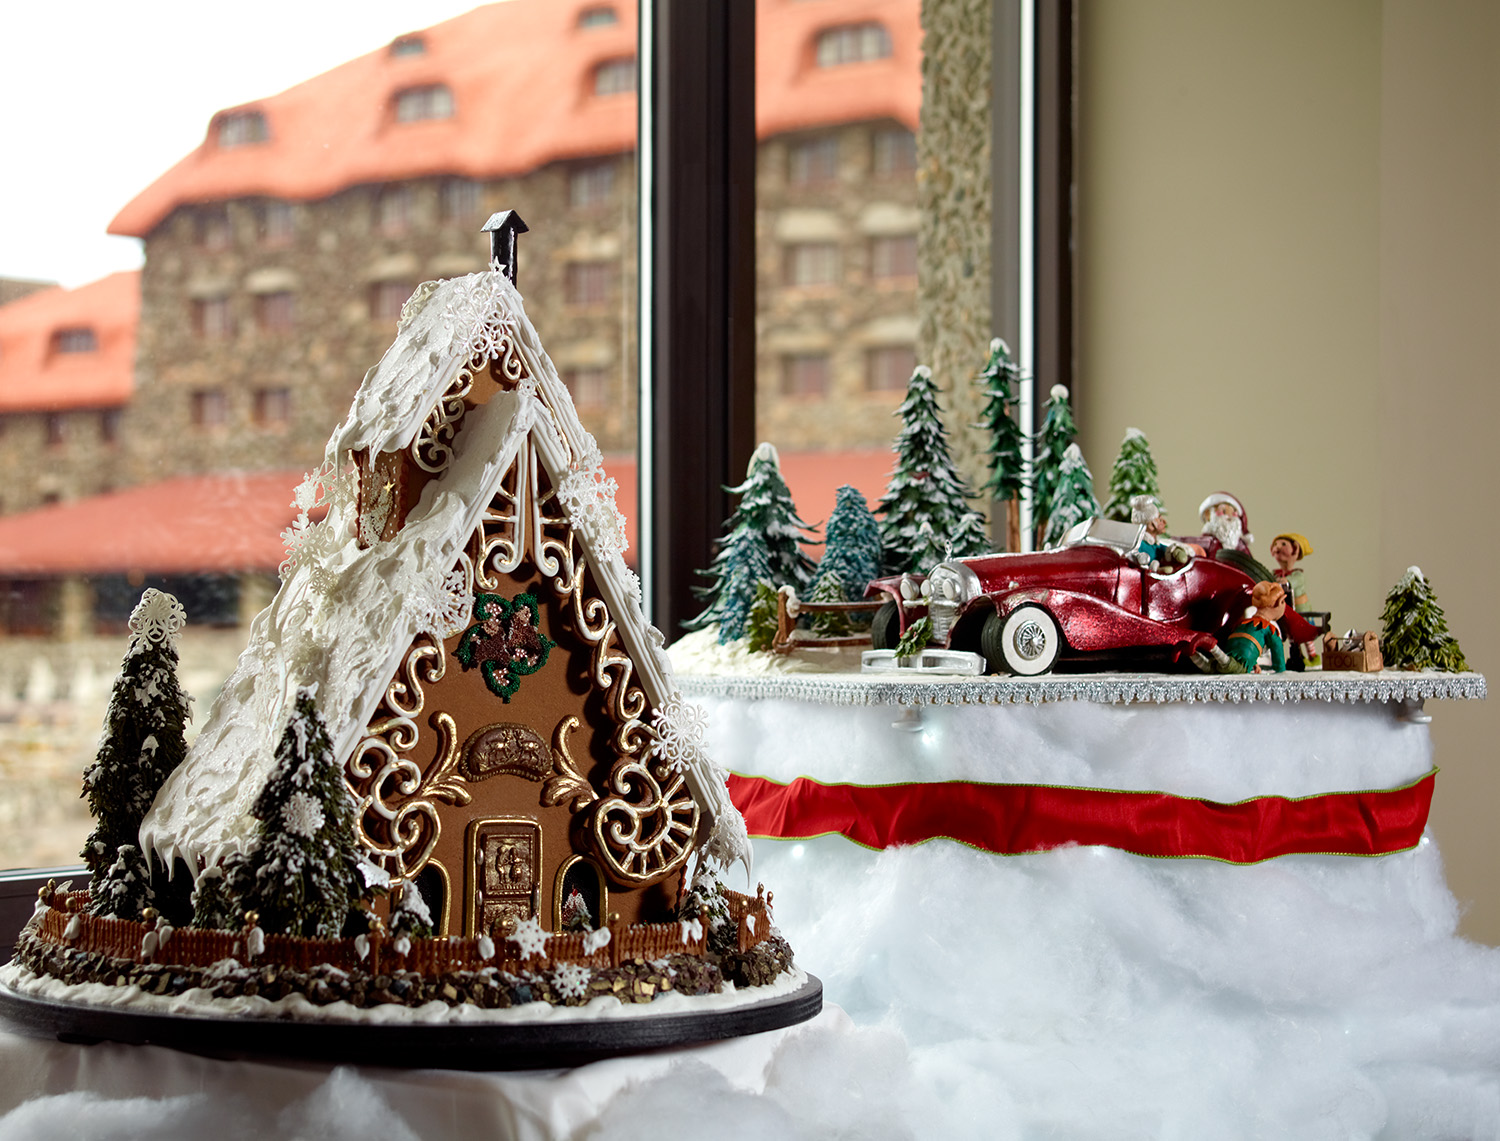 Omni Gears Up For Gingerbread Competitions